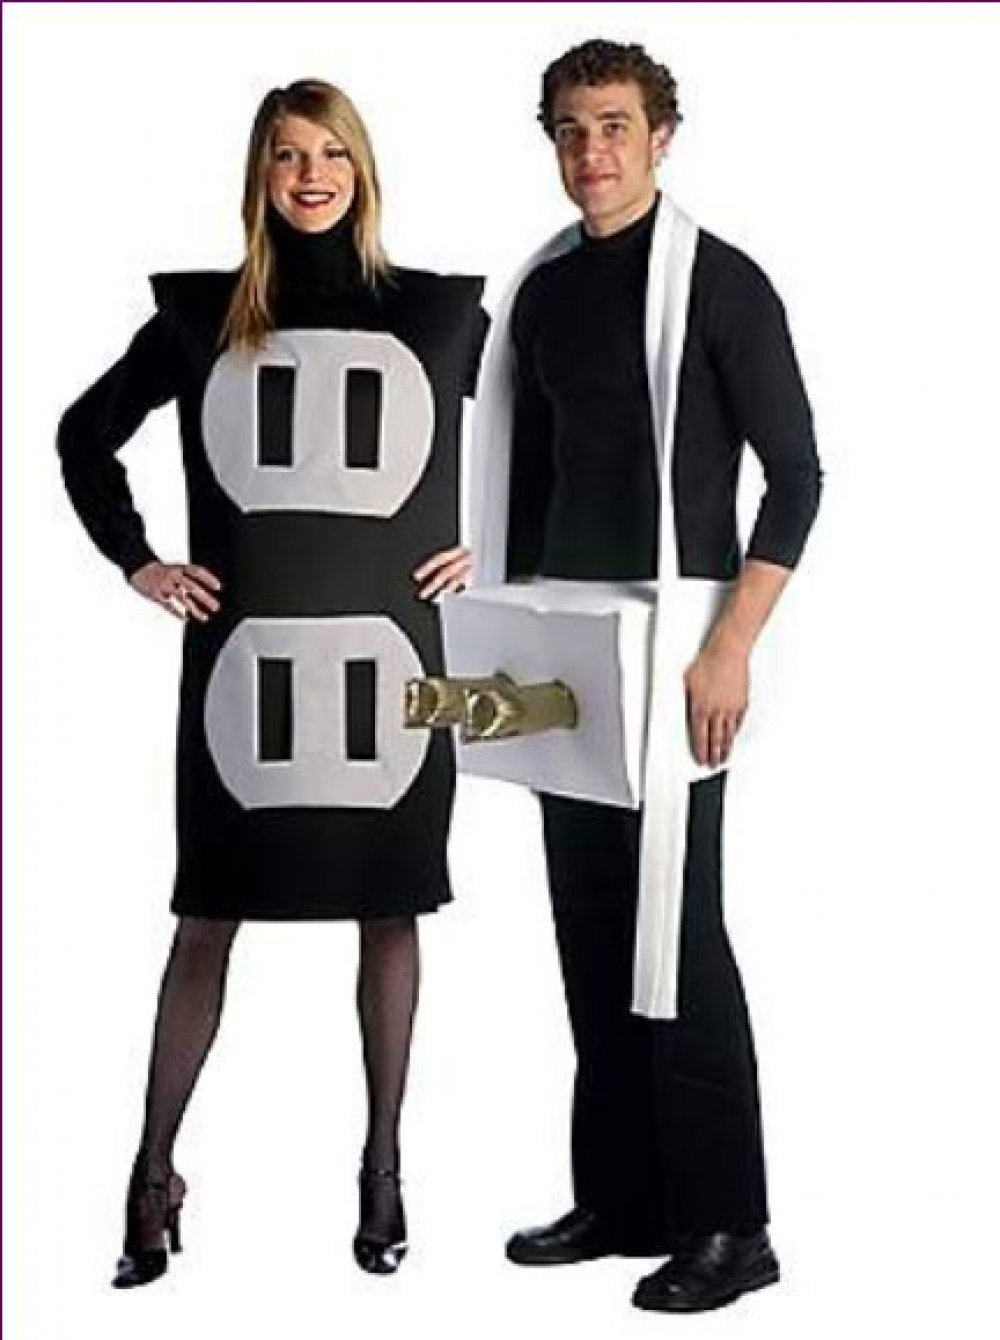 10 Famous Couples Halloween Costume Ideas For Adults funny fun lol couple halloween costumes pics images  sc 1 st  Unique Ideas 2018 & 10 Famous Couples Halloween Costume Ideas For Adults